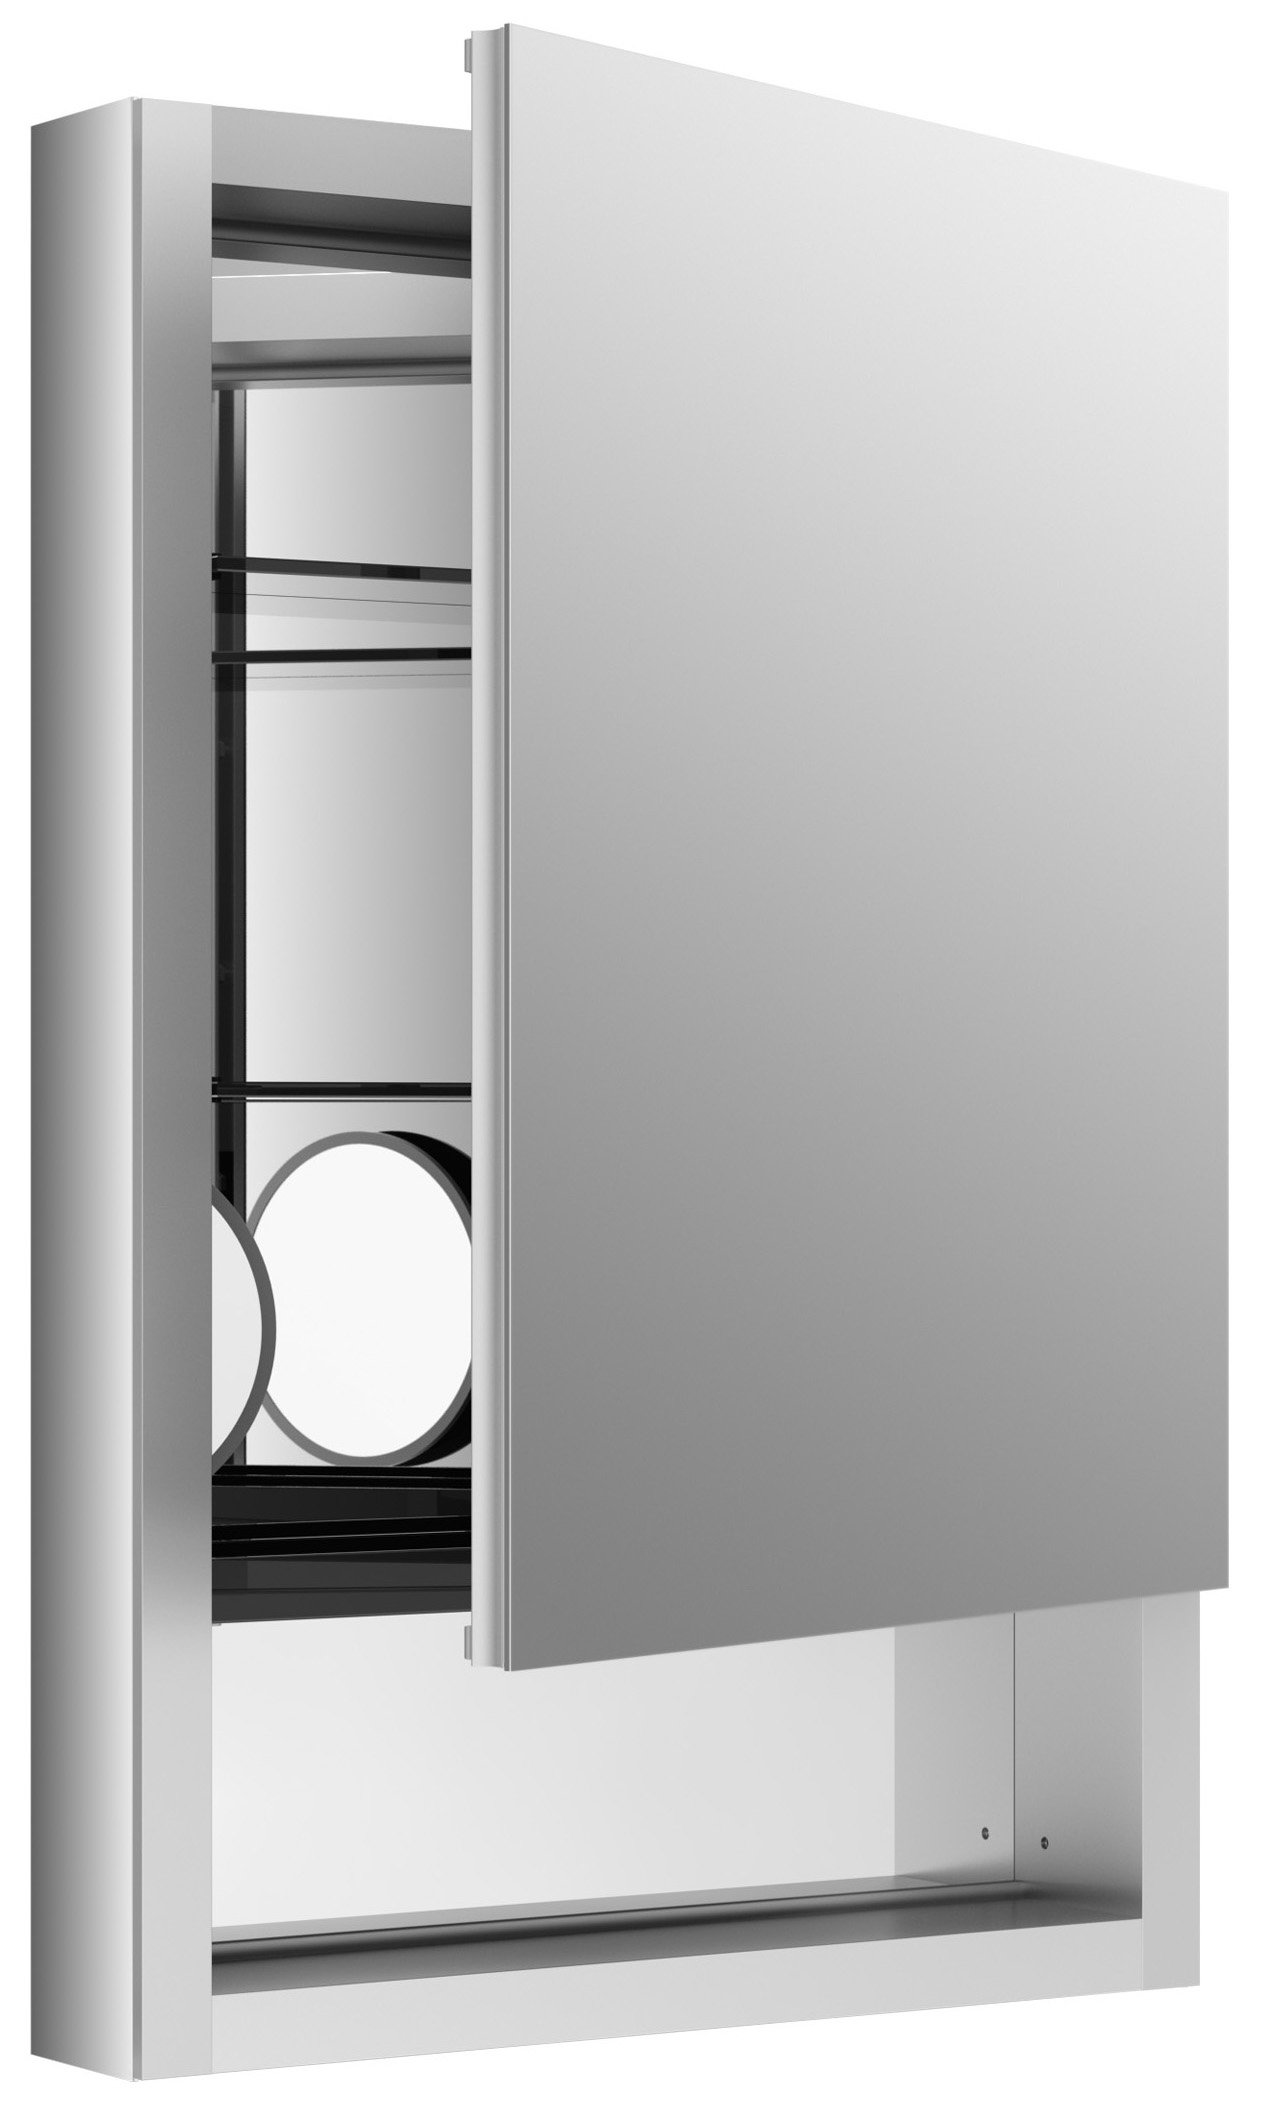 KOHLER K-99005-R-NA Verdera 20-Inch By 30-Inch Quick-Storage Medicine Cabinet With Magnifying Mirror, Right Hinge